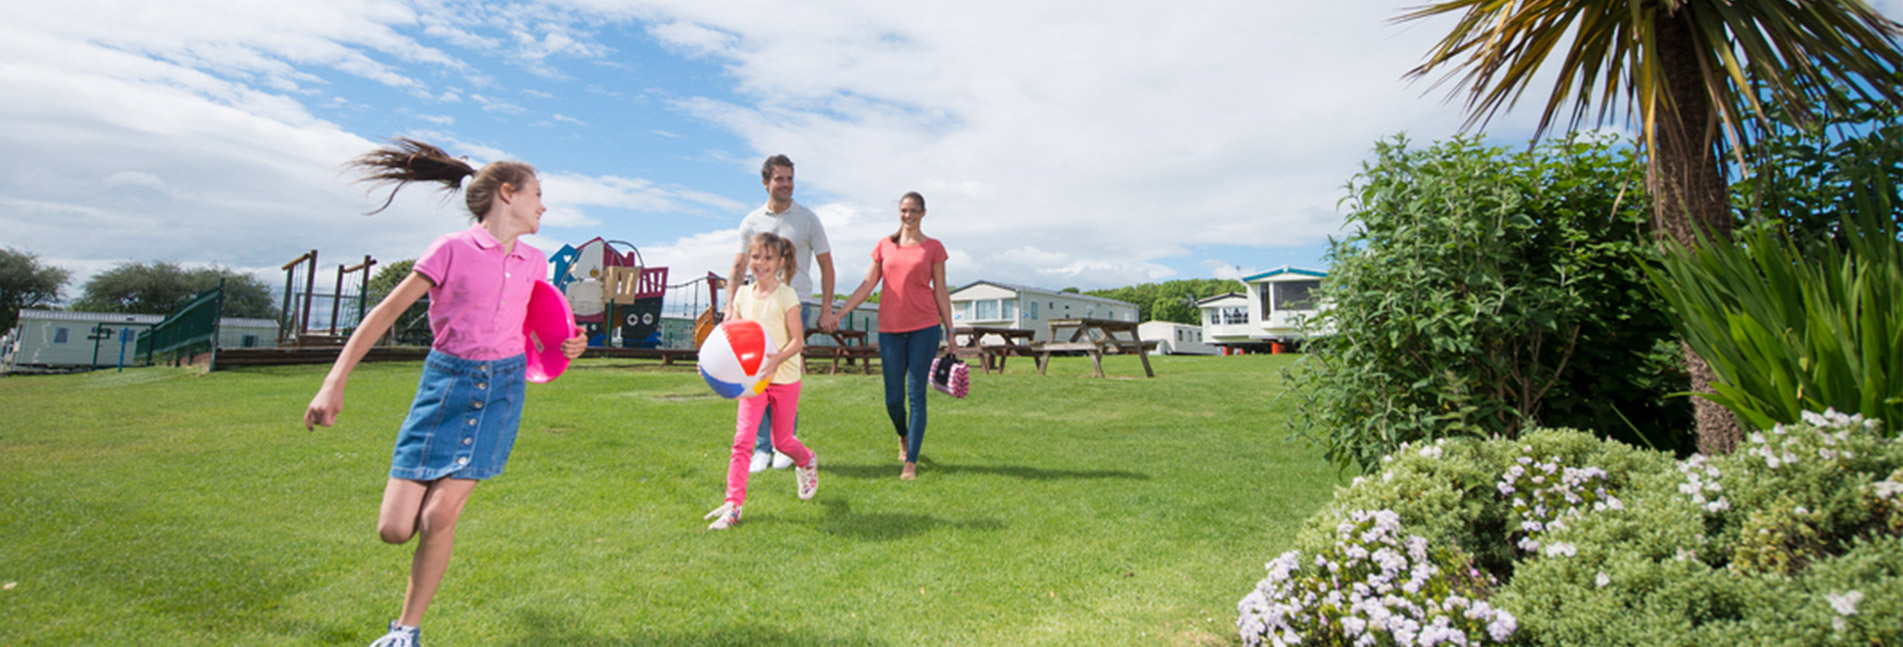 A family running across the grass of a caravan park